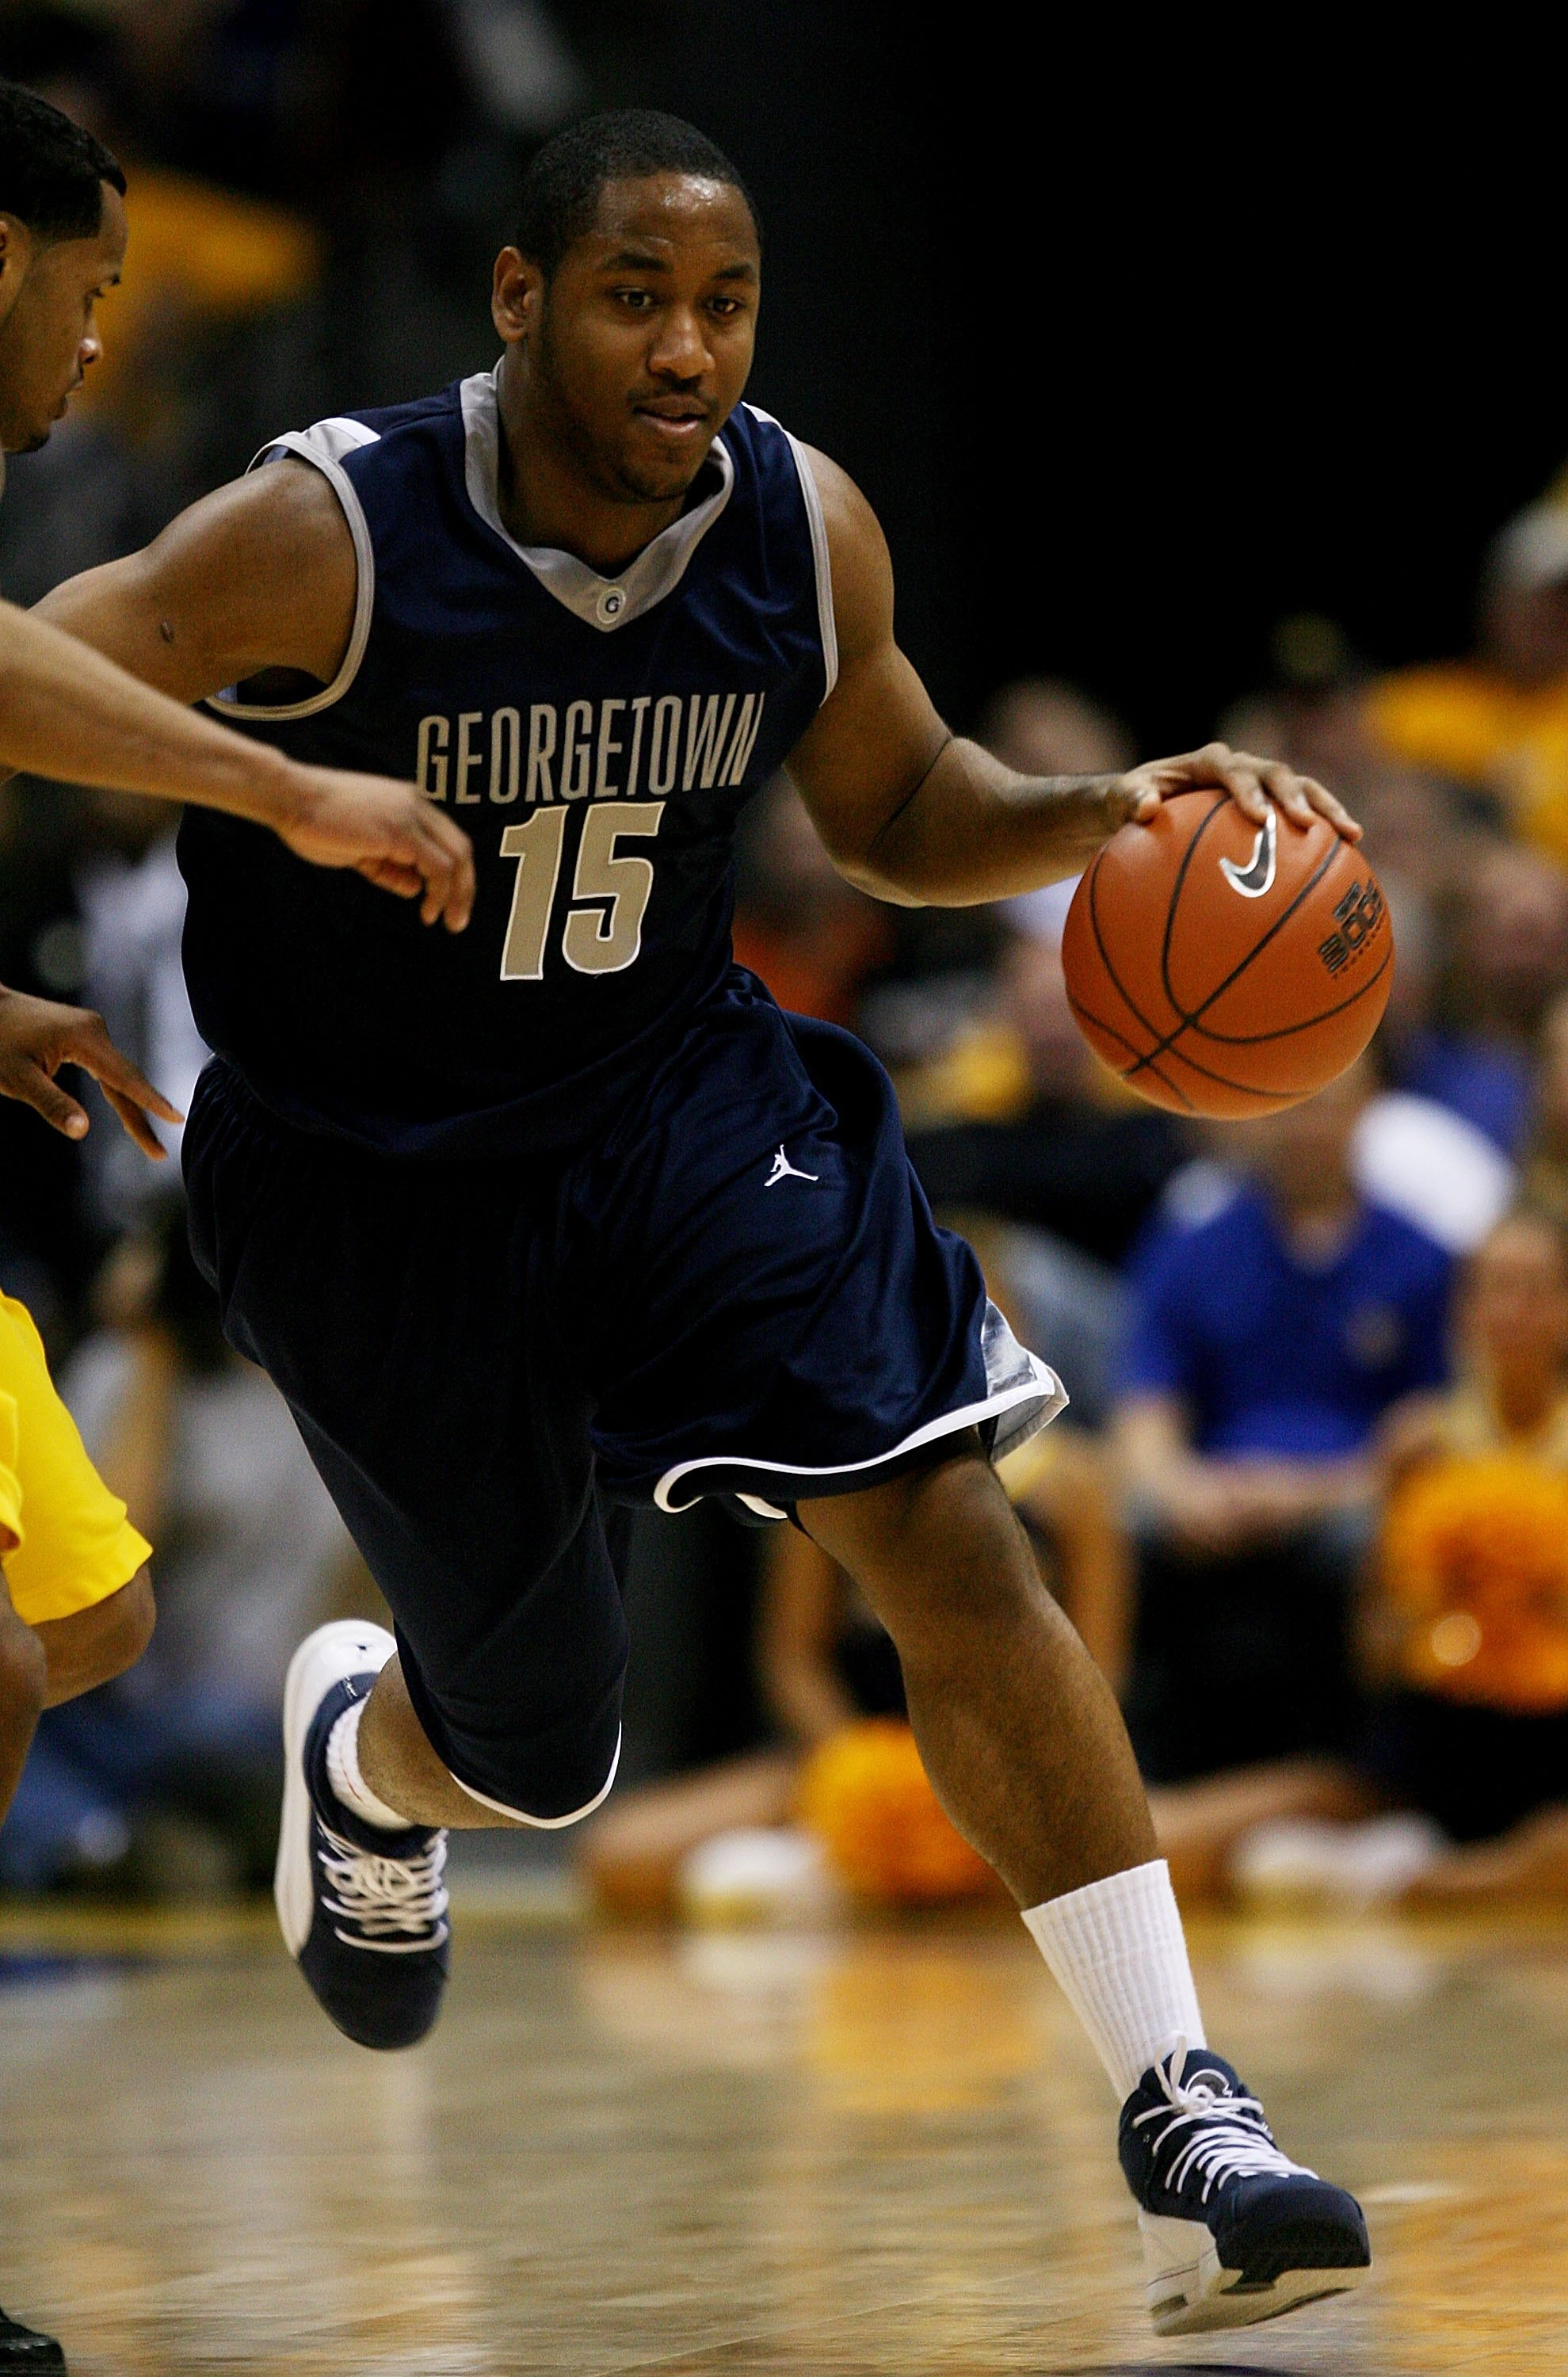 MILWAUKEE - JANUARY 31: Austin Freeman #15 of the Georgetown Hoyas brings the ball upcourt against the Marquette Golden Eagles on January 31, 2009 at the Bradley Center in Milwaukee, Wisconsin. Marquette defeated Georgetown 94-82. (Photo by Jonathan Danie